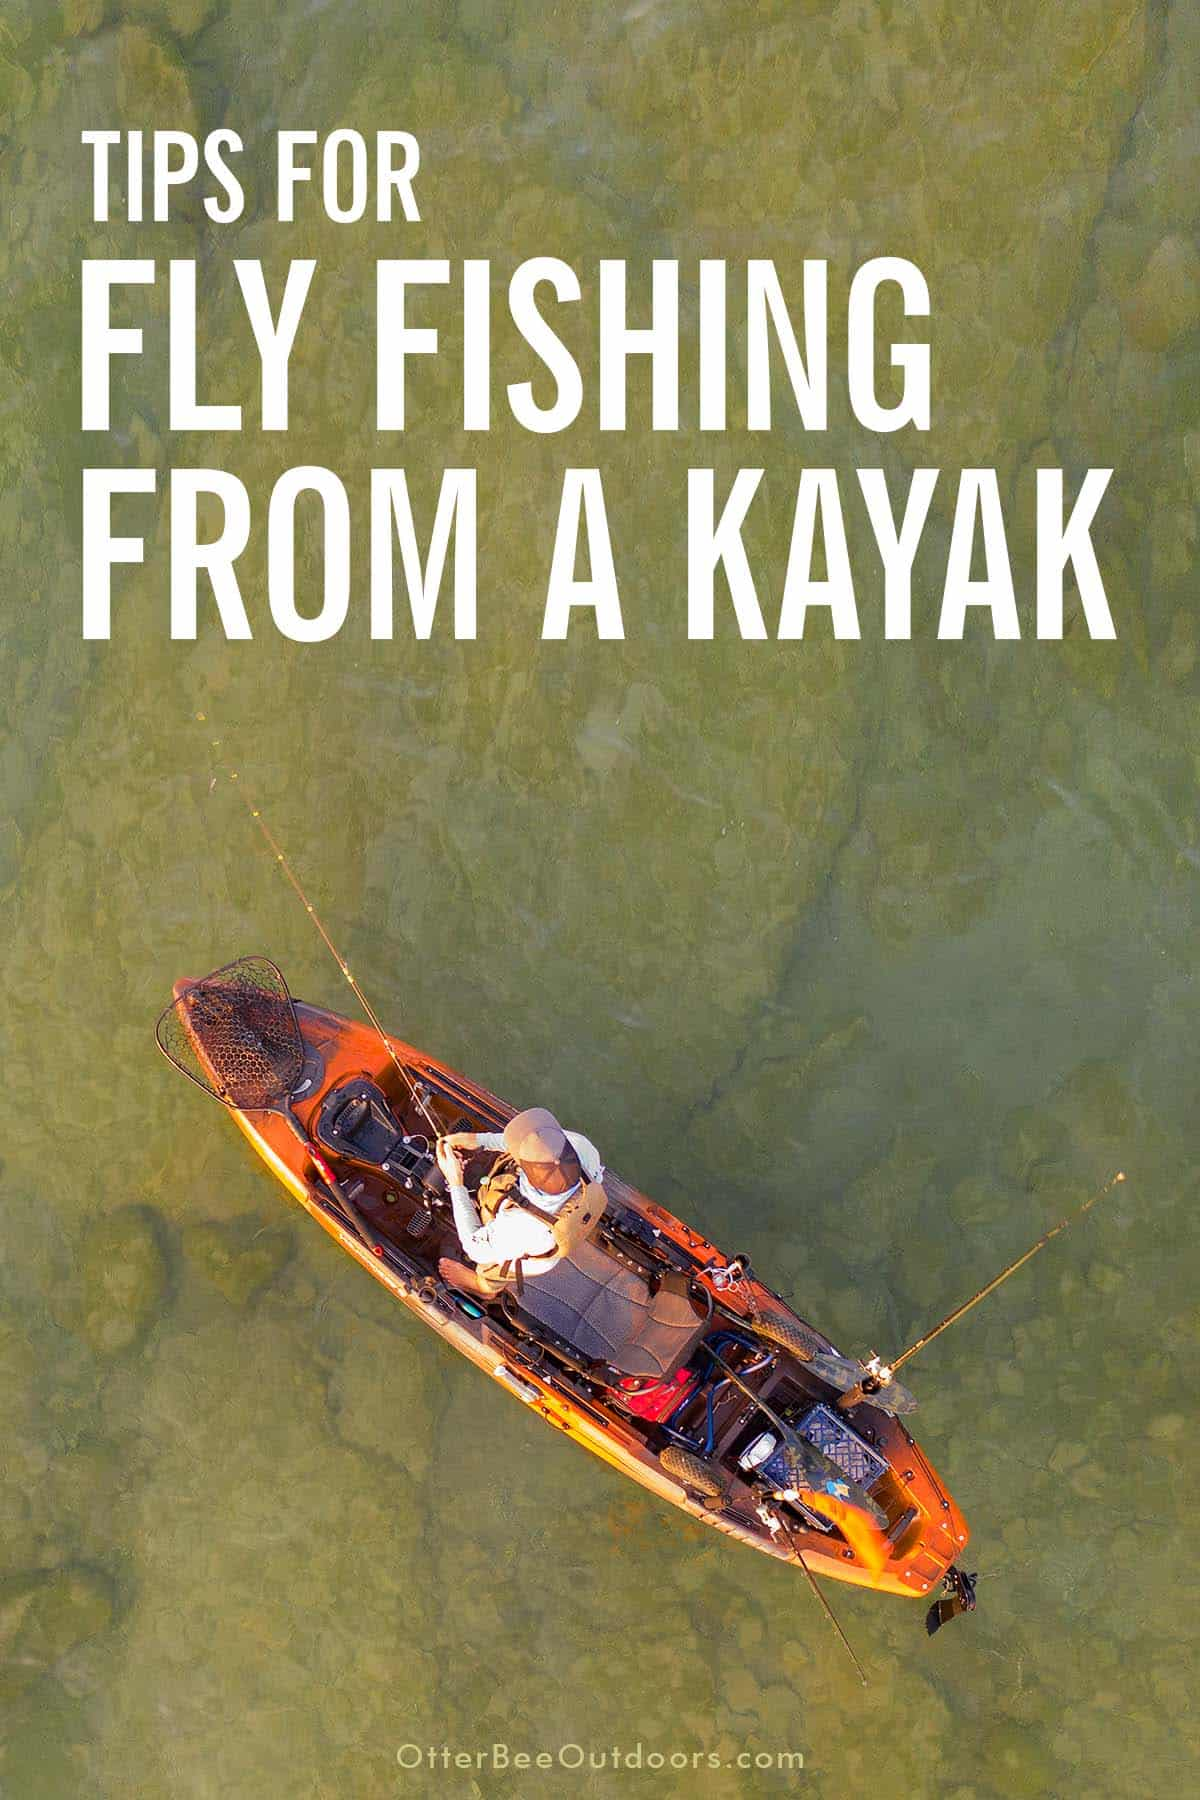 Fly fisherman in a fishing kayak in shallow water. The graphic says, Tips For Fly Fishing From A Kayak.